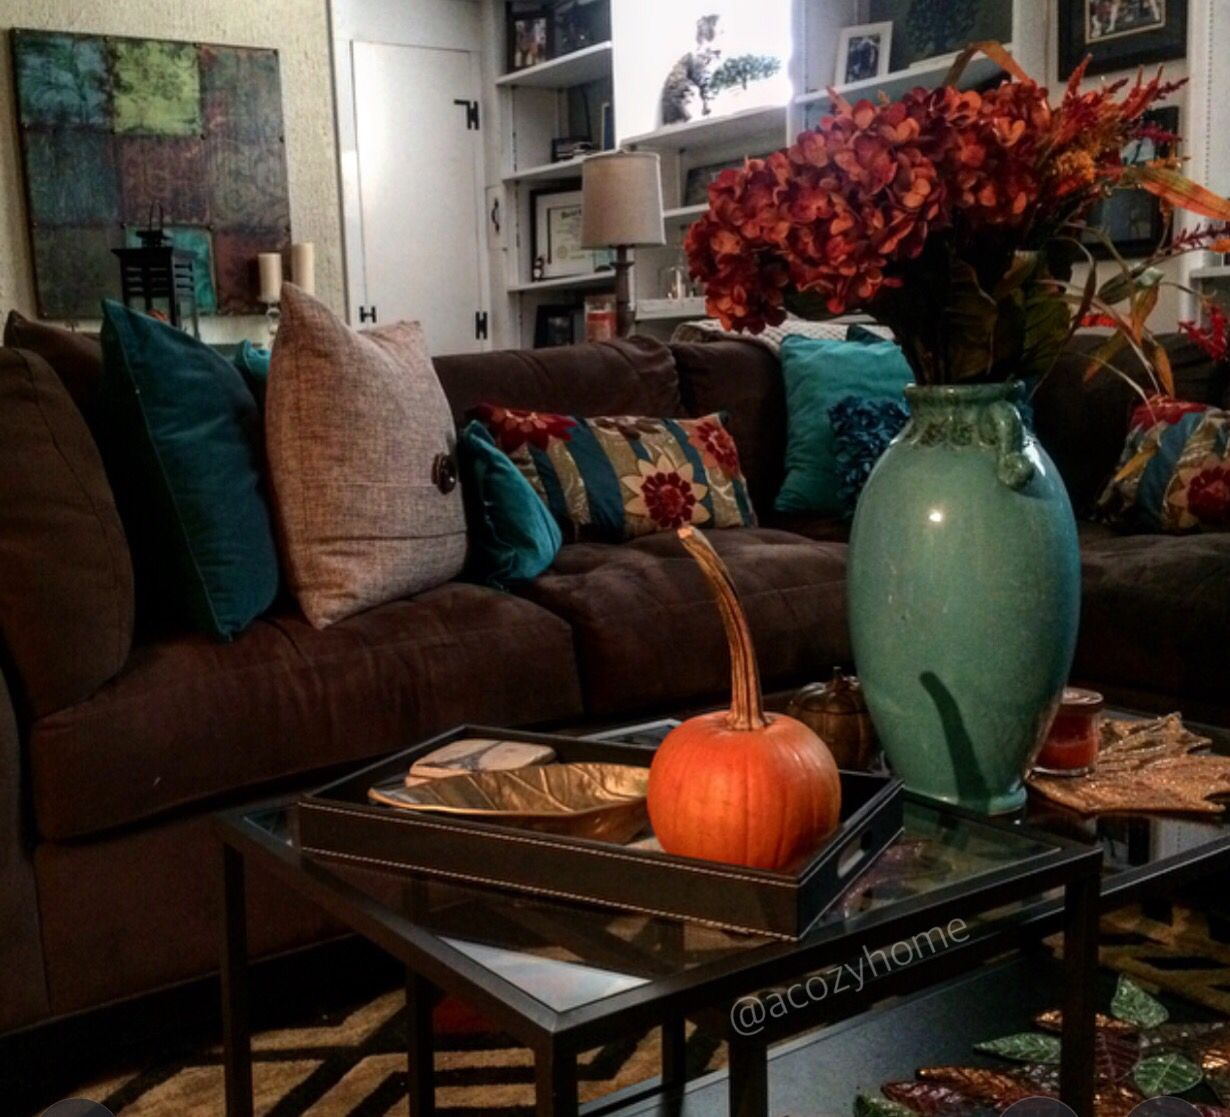 Rustic fall living room decor earth tones fall decor - Brown sofa living room decor ideas ...